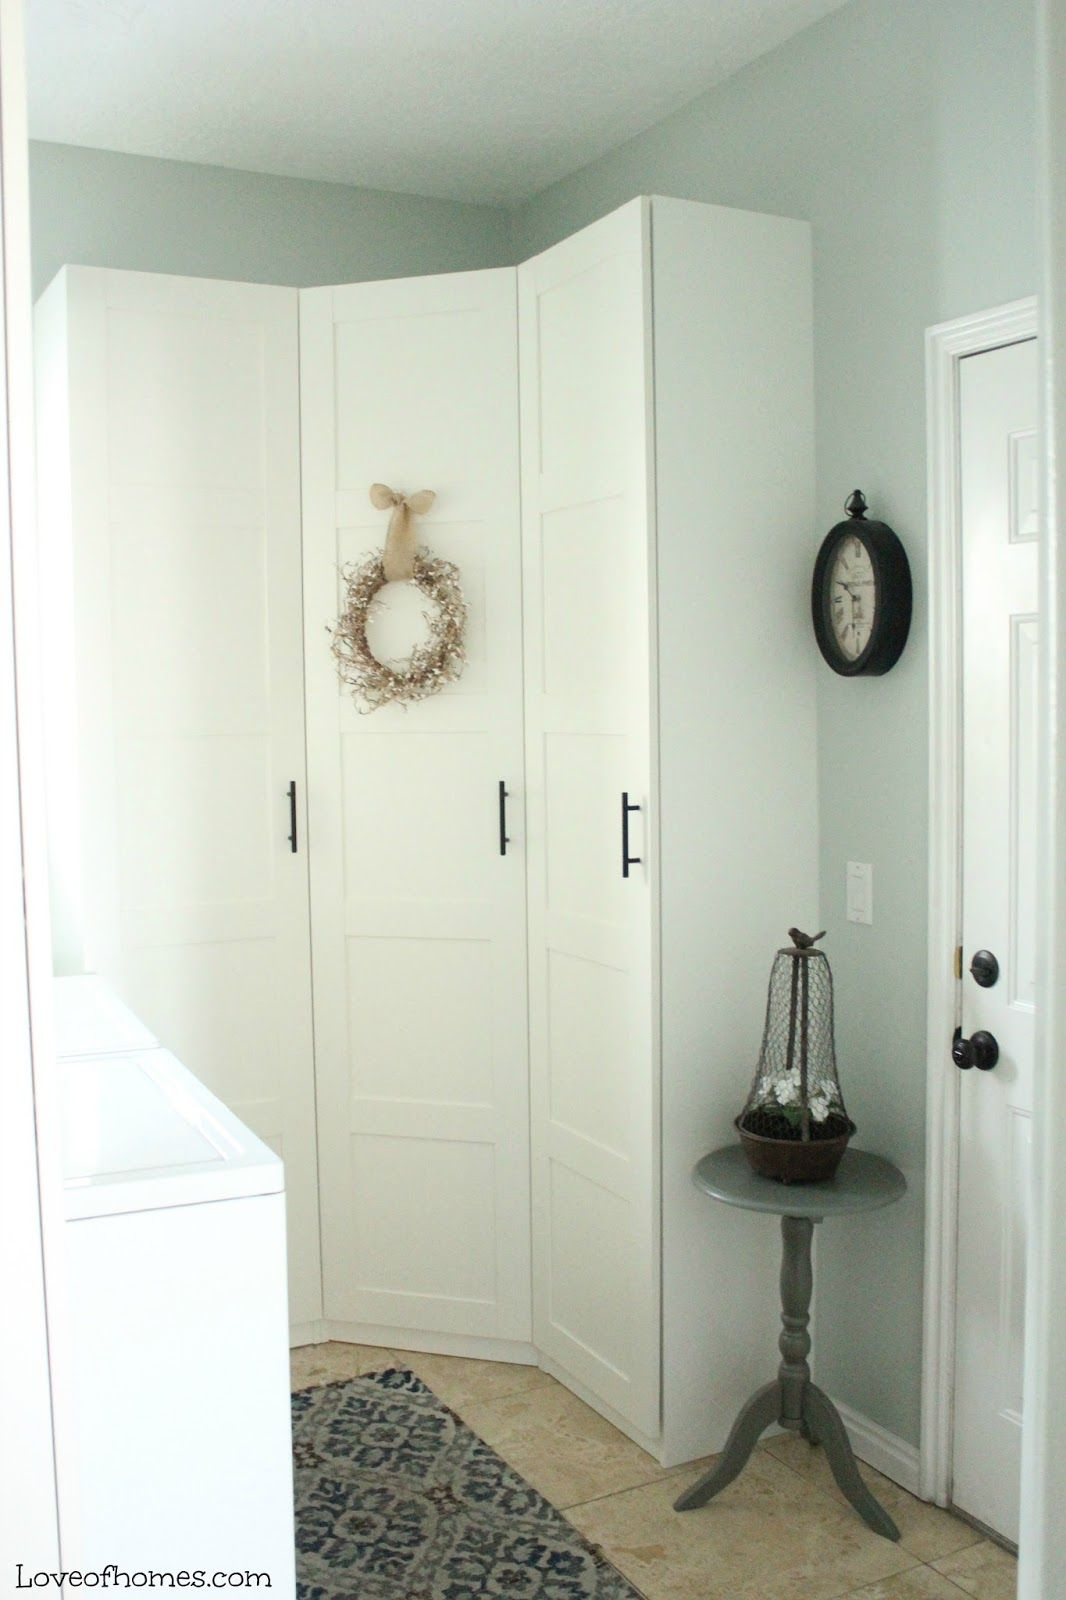 Ikea System Laundry Room Mudroom Ikea Pax System Ideas For The House